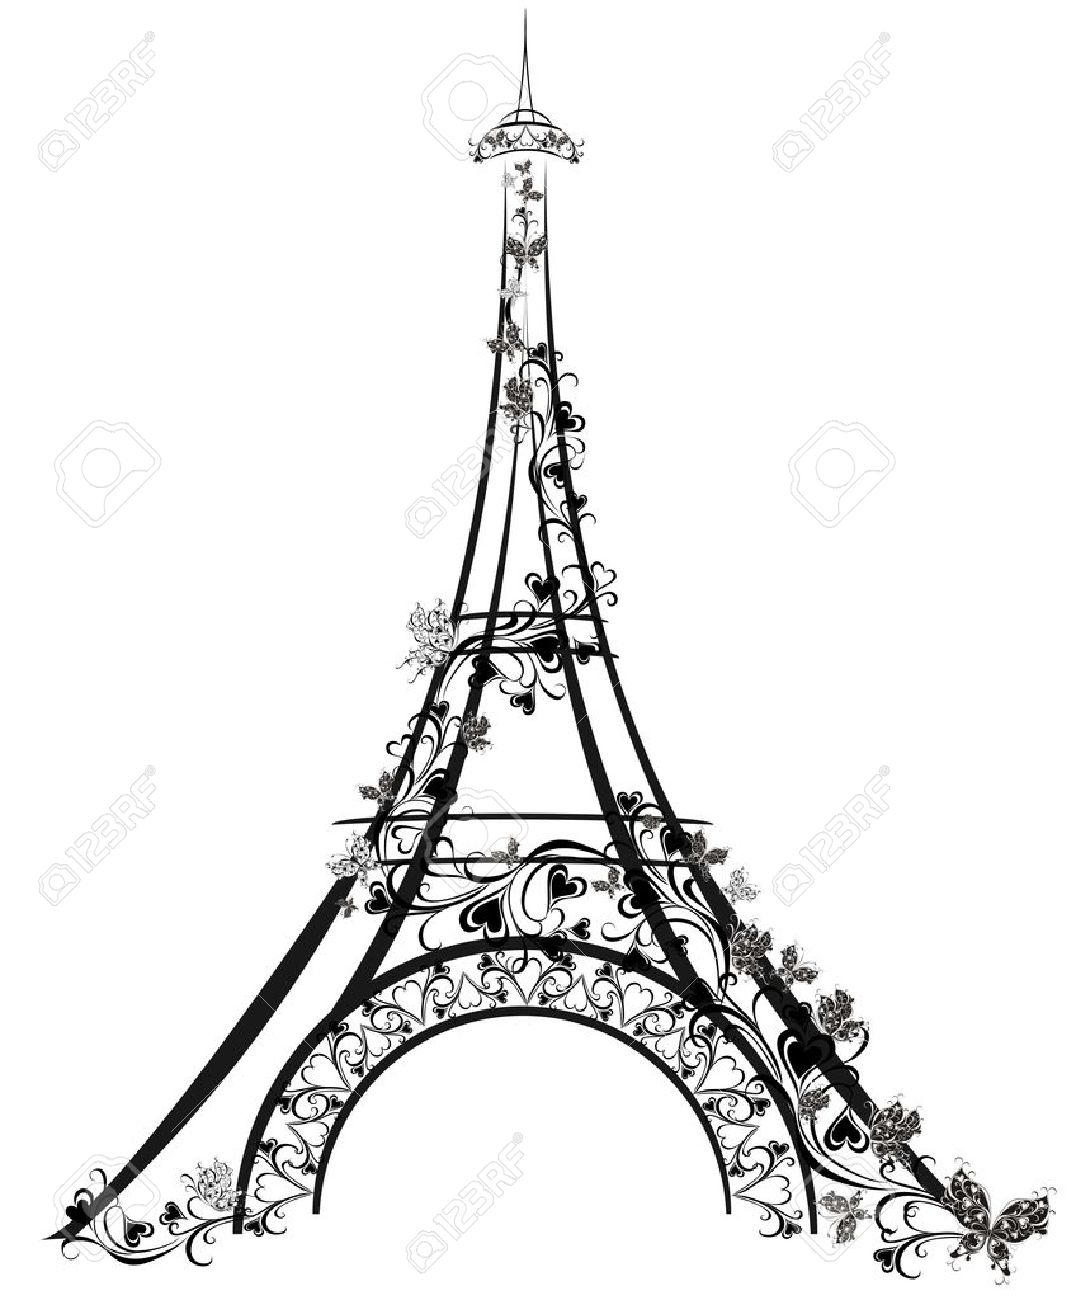 1076x1300 Eiffel Tower, Paris, France Royalty Free Cliparts, Vectors,